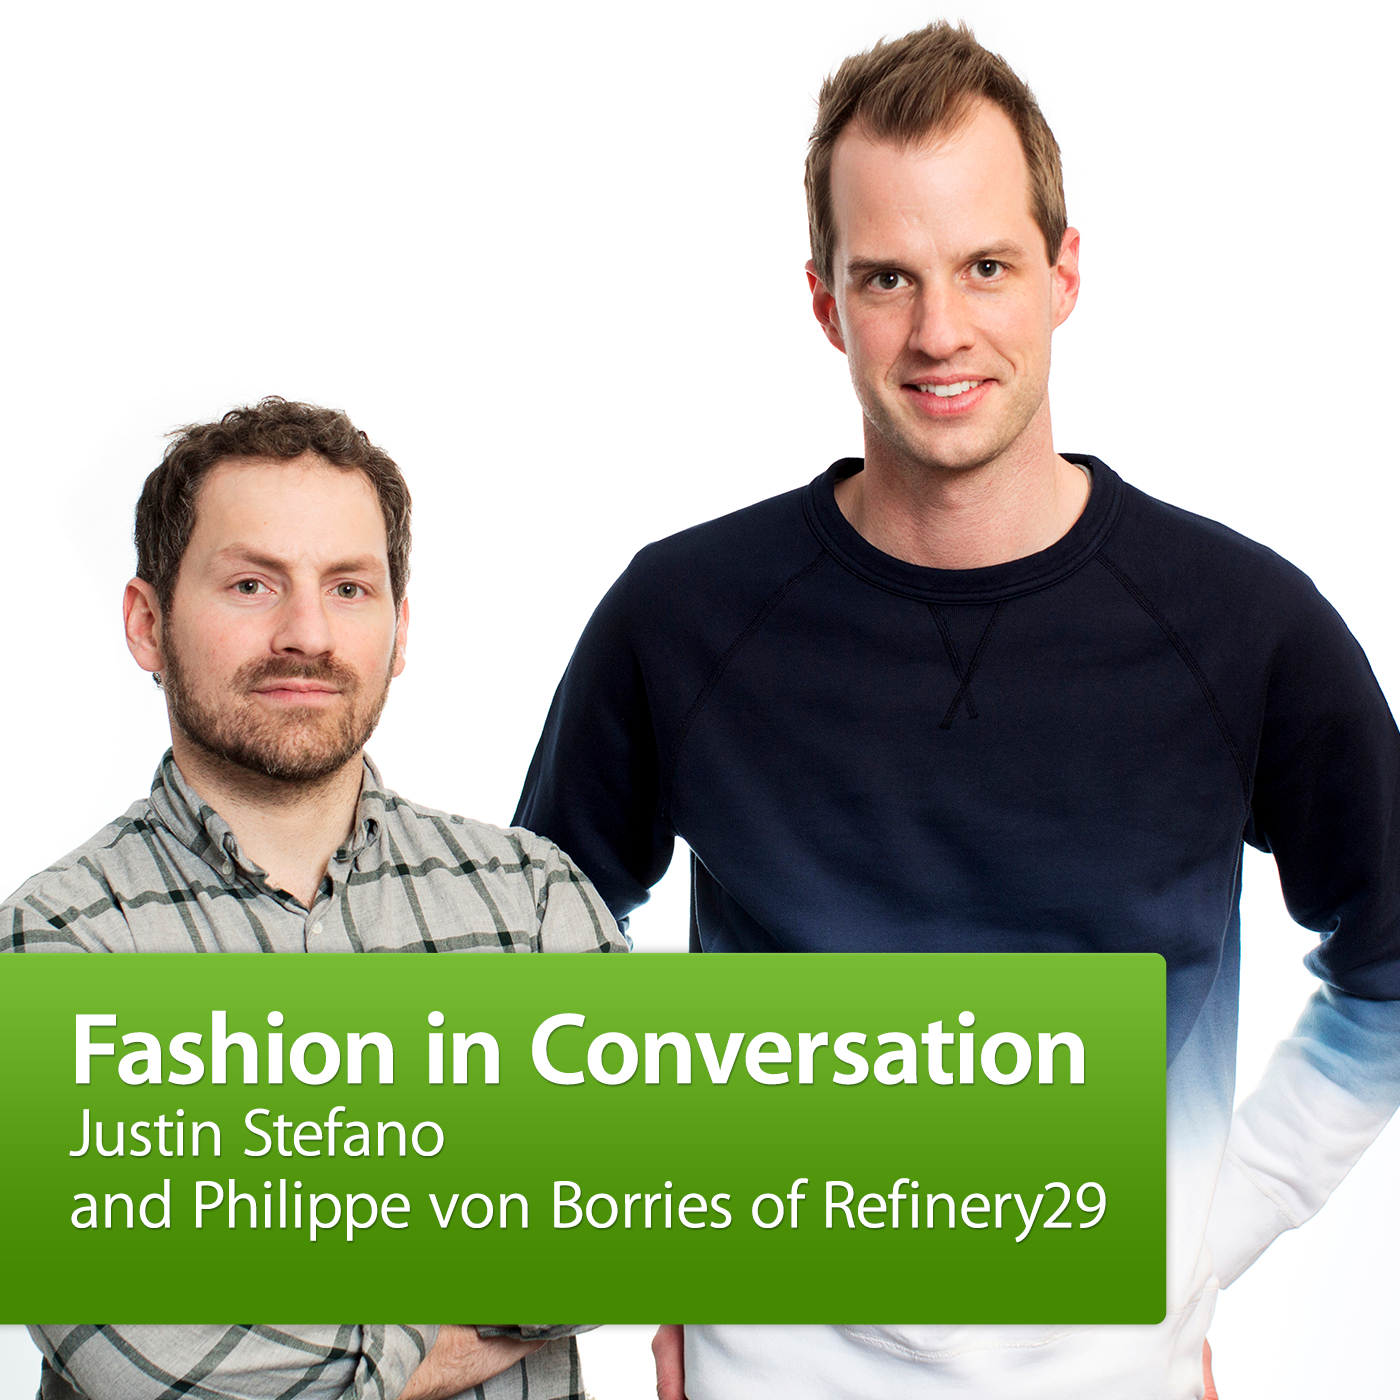 Justin Stefano and Philippe von Borries of Refinery29